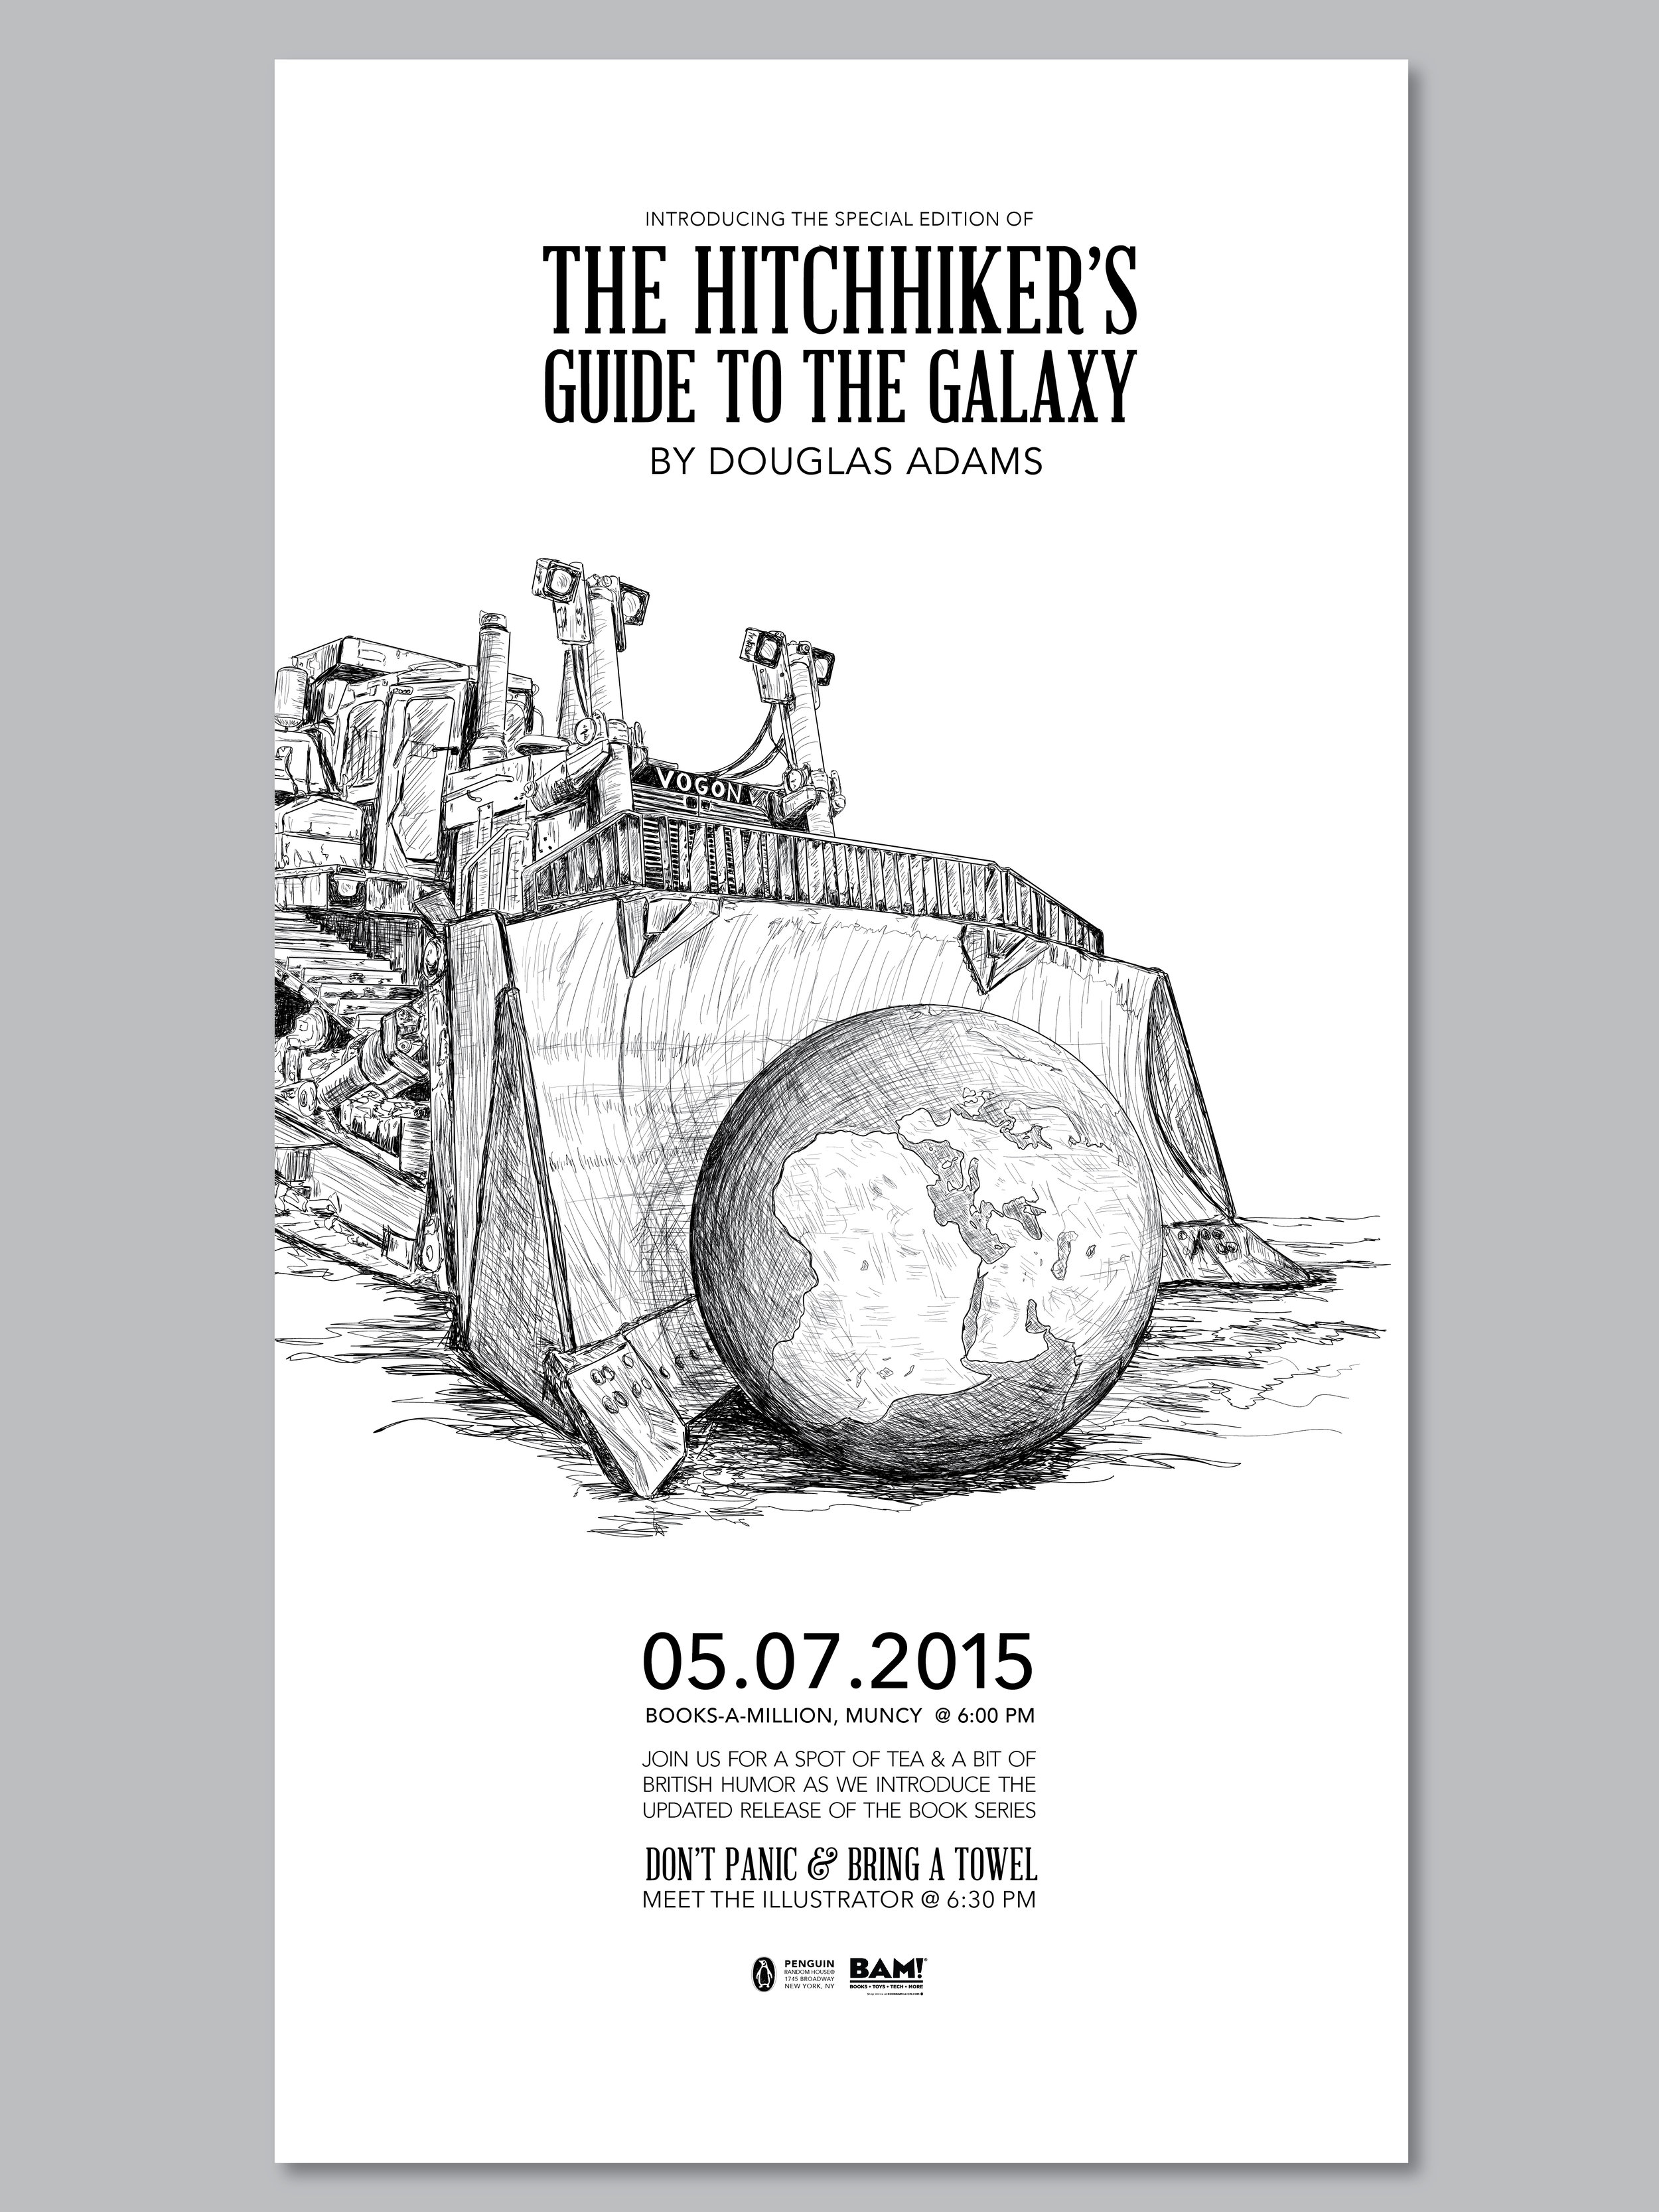 The Hitchhiker's Guide to the Galaxy Box Set Release Poster